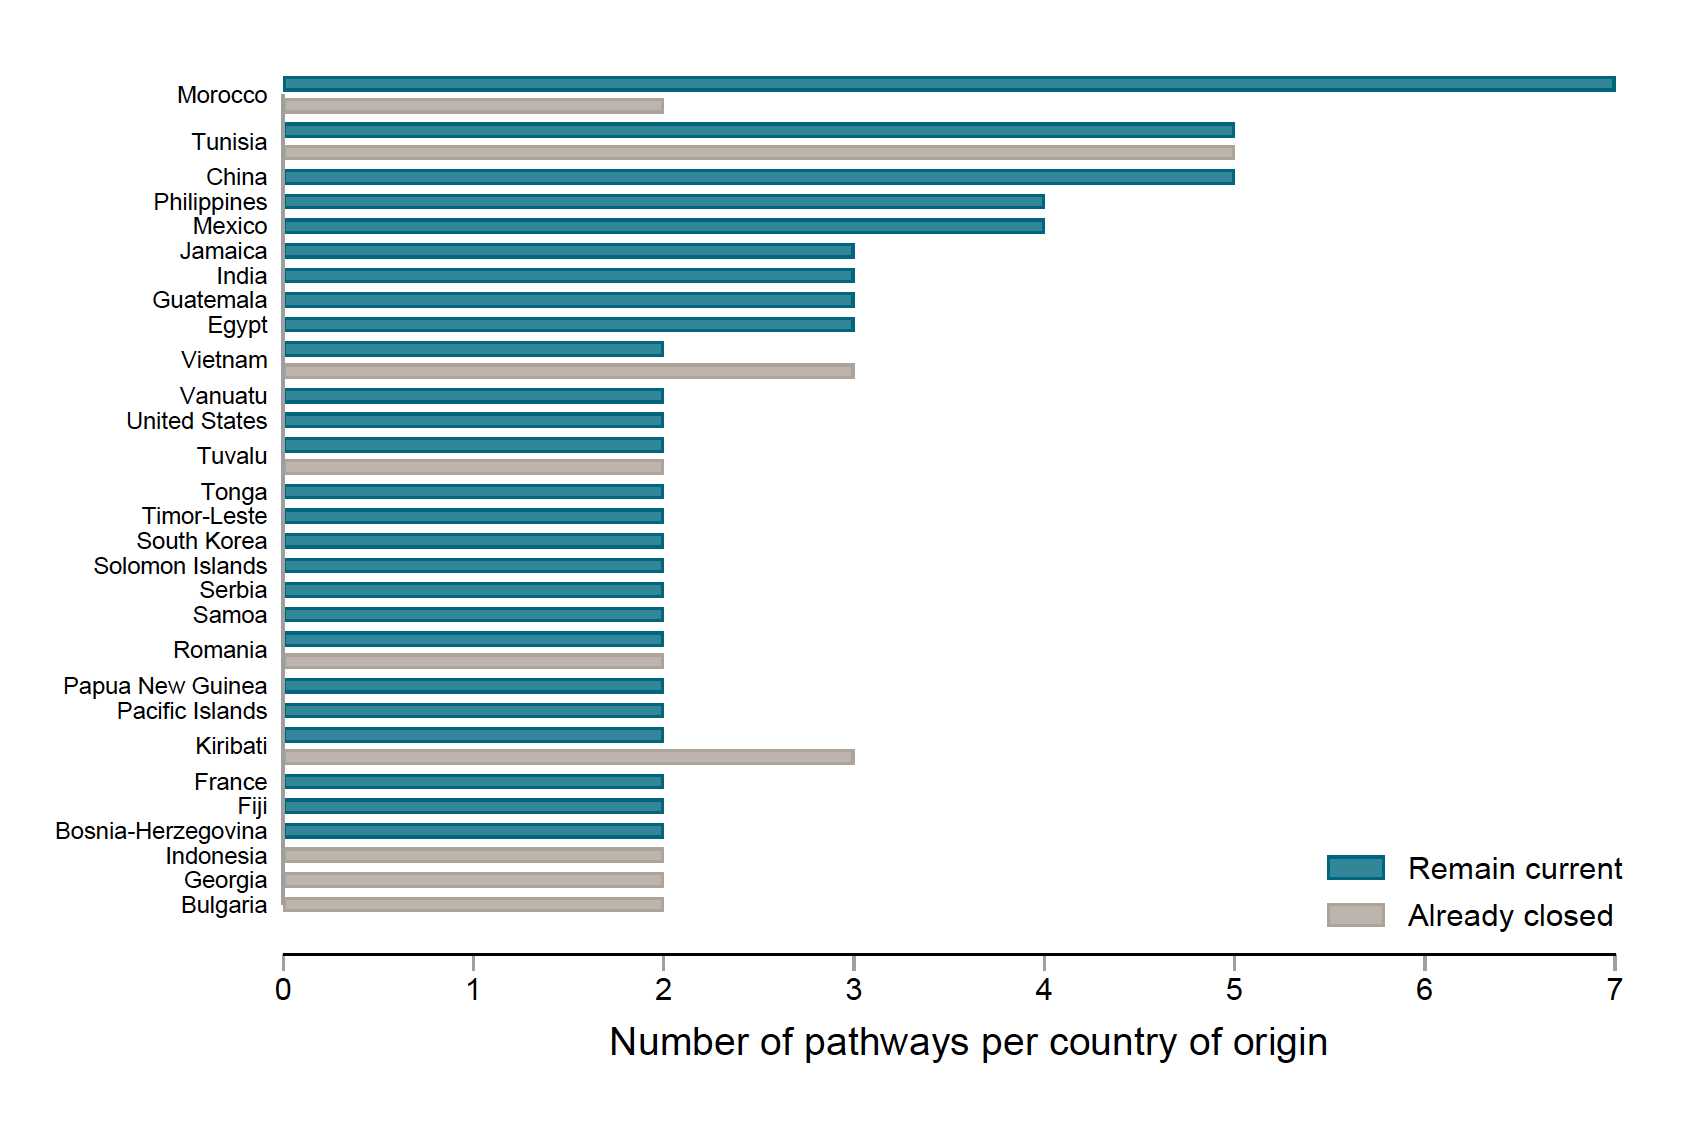 A bar chart showing that North Africa is a leading region for migration countries of origin. Indonesia, Georgia, and Bulgaria have only closed pathways.